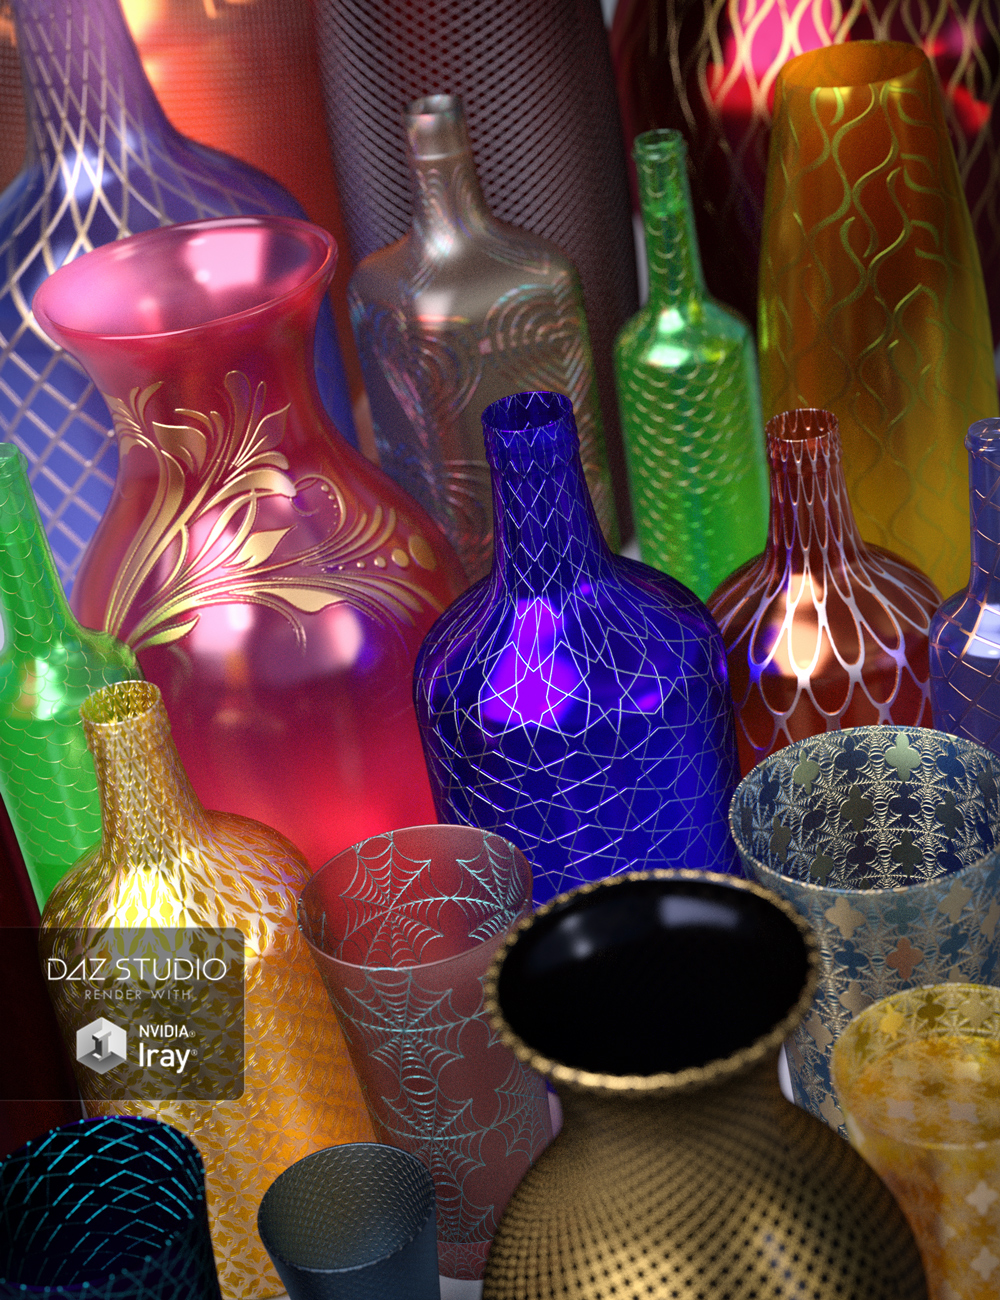 Ornate Glass Iray Shaders by: JGreenlees, 3D Models by Daz 3D